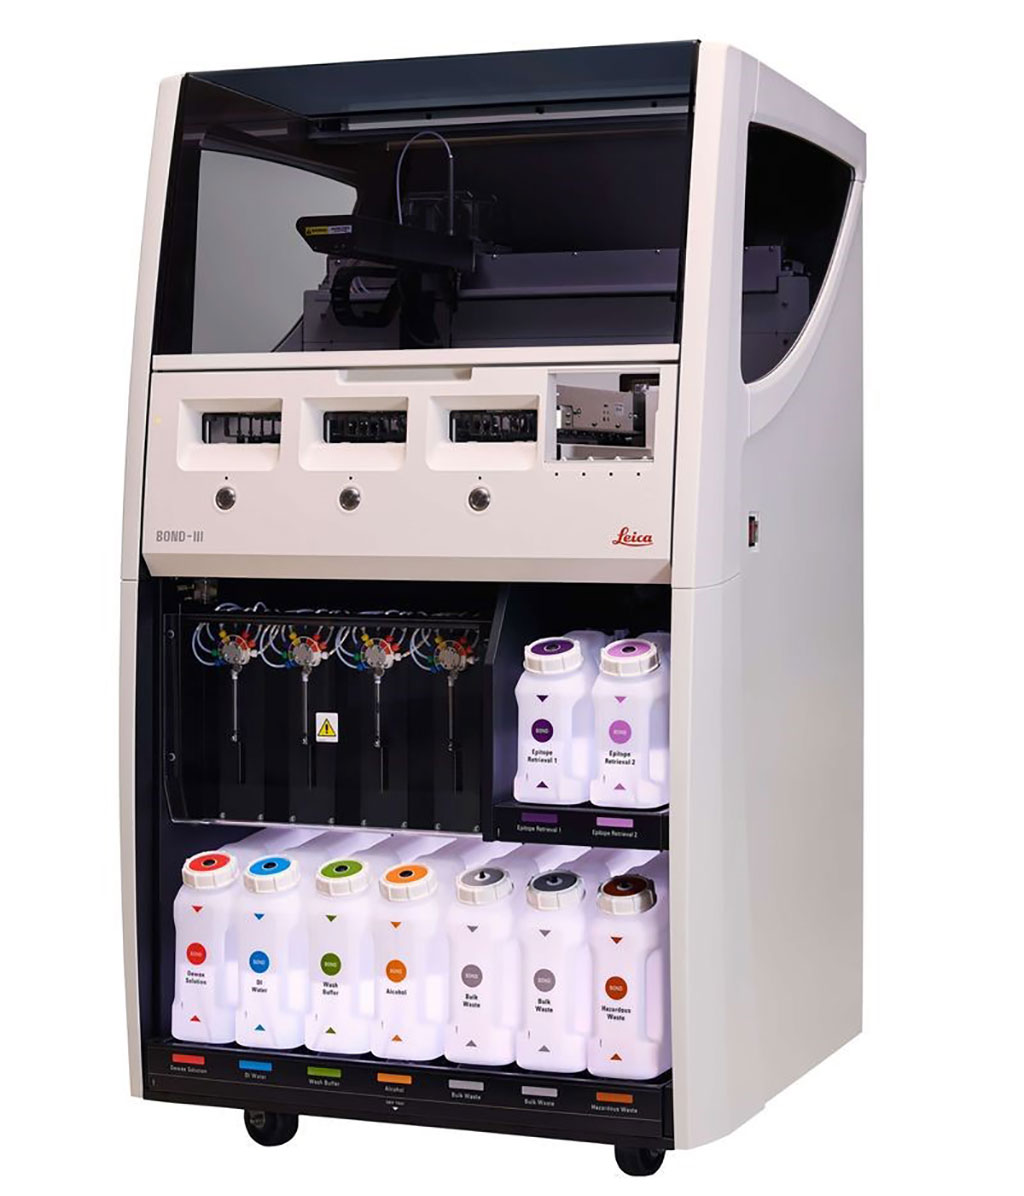 Image: The Leica Bond III stainer is fully automated Immunohistochemical and In Situ Hybridization (IHC and ISH stainer) (Photo courtesy of Leica Biosystems).